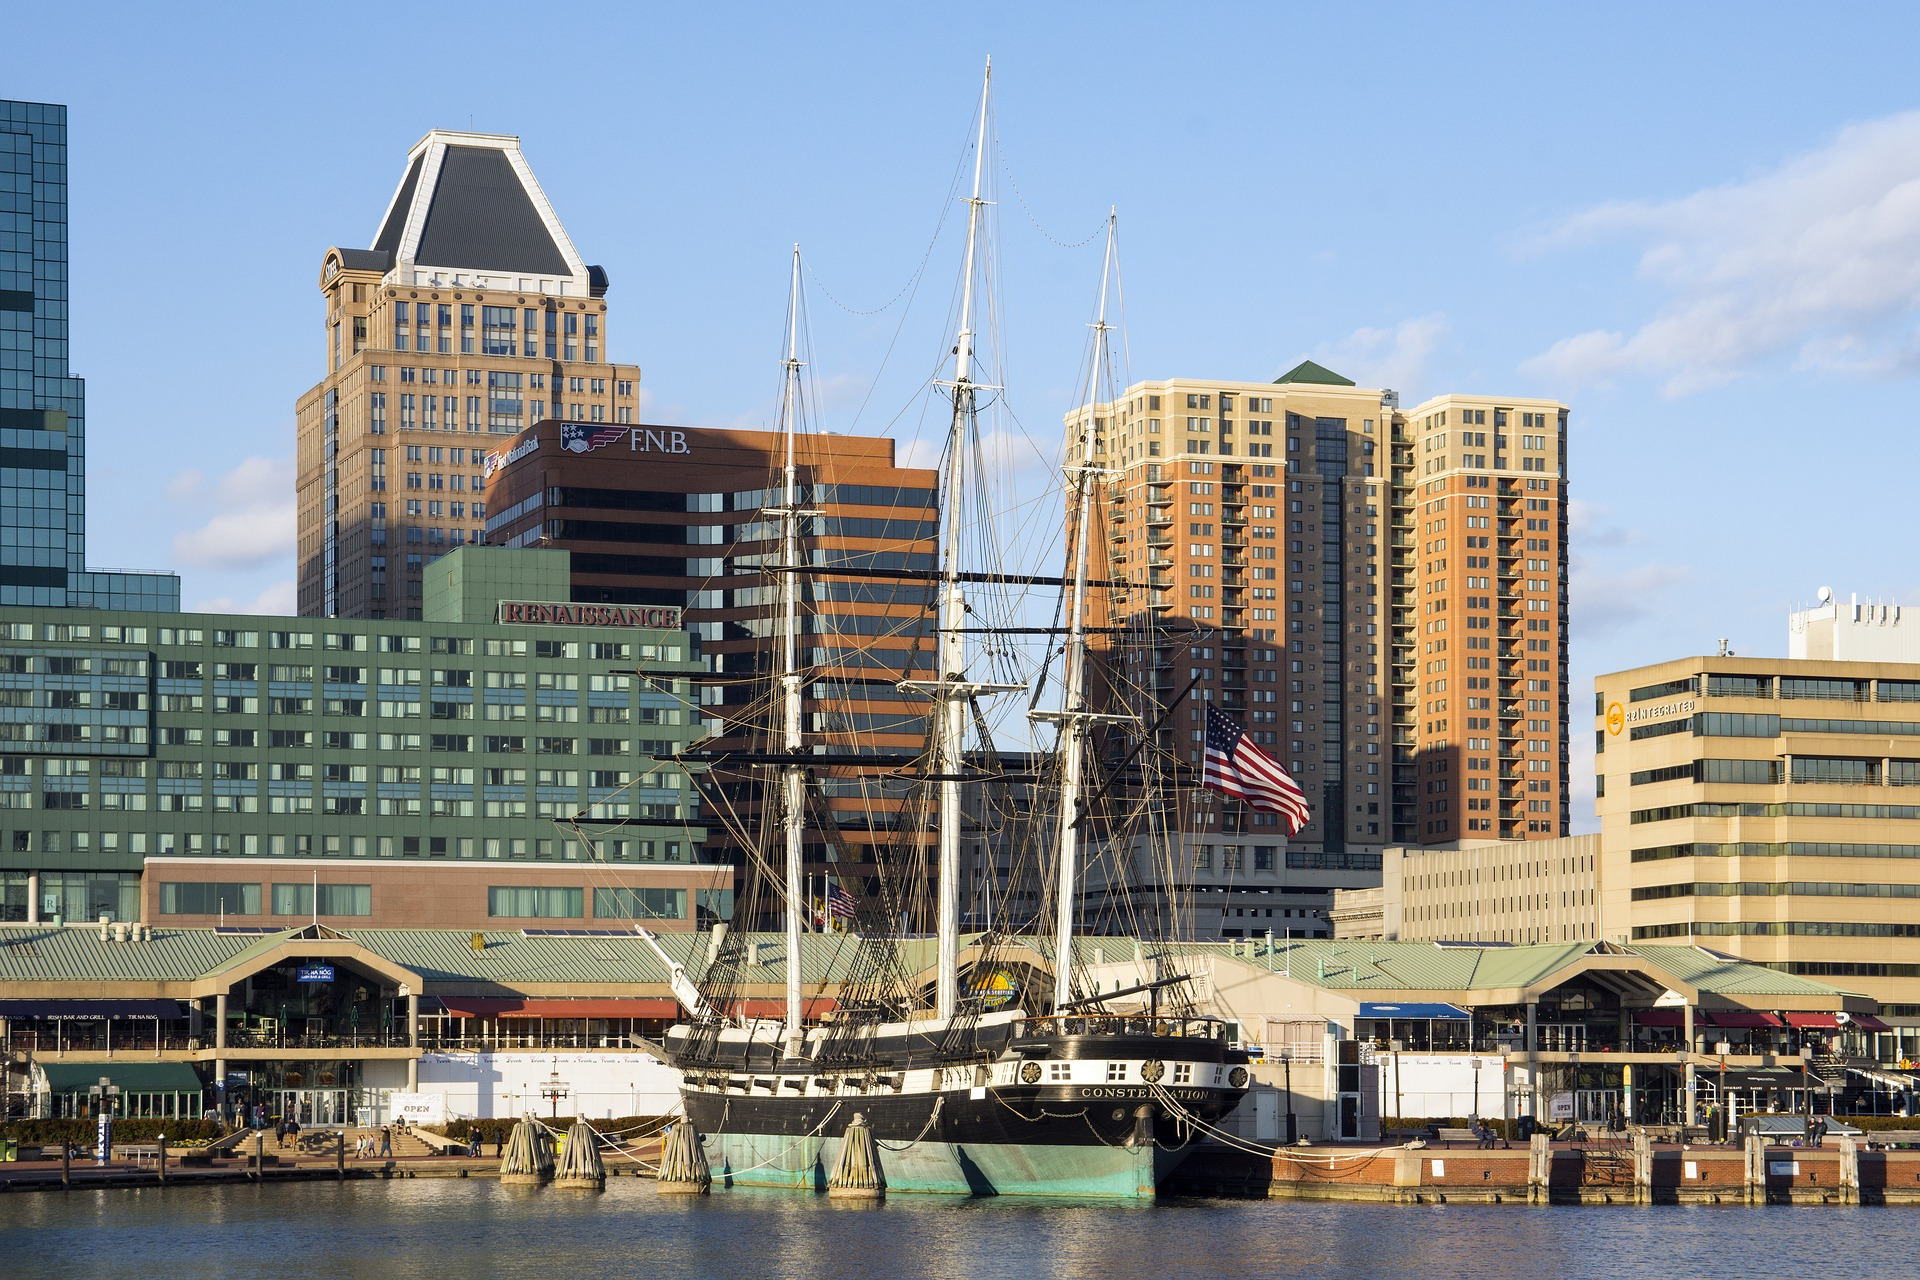 A tall ship moored to a dock with tall buildings in the background.